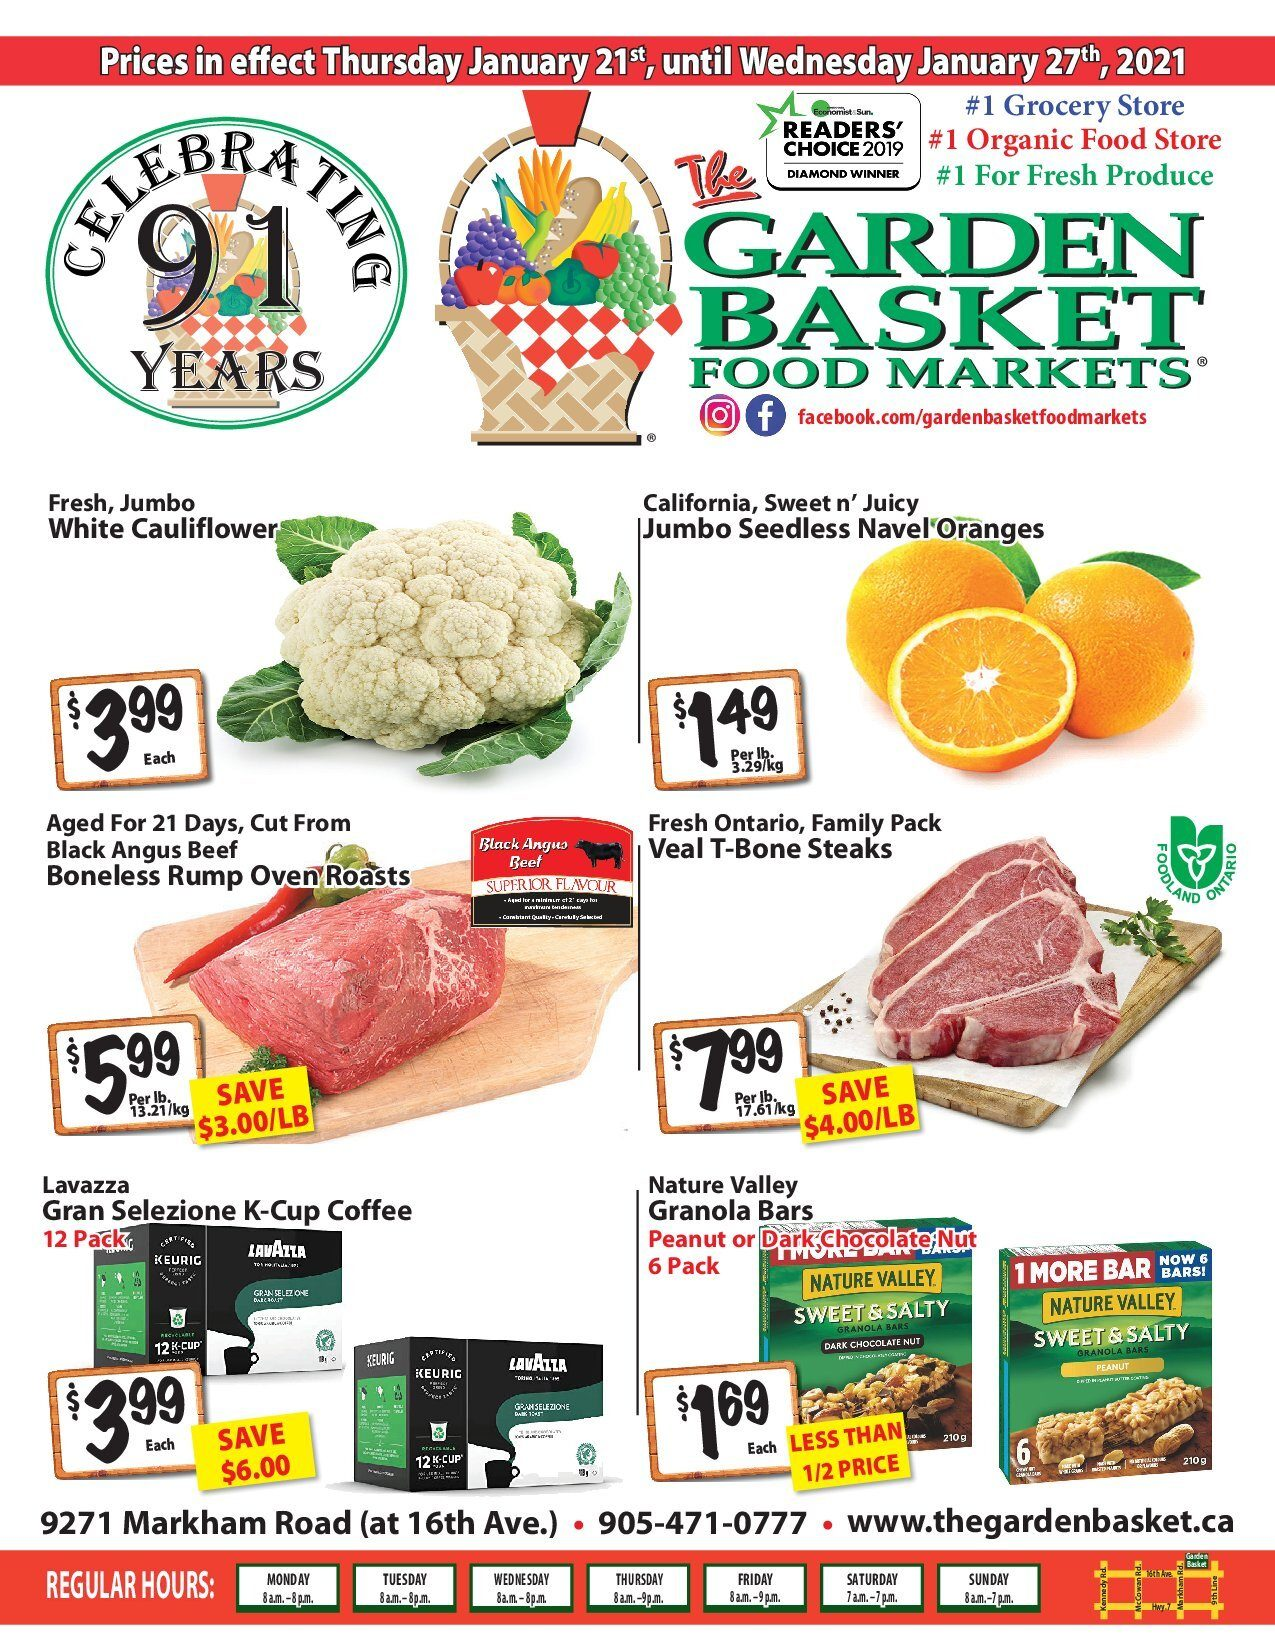 The Garden Basket - Weekly Specials